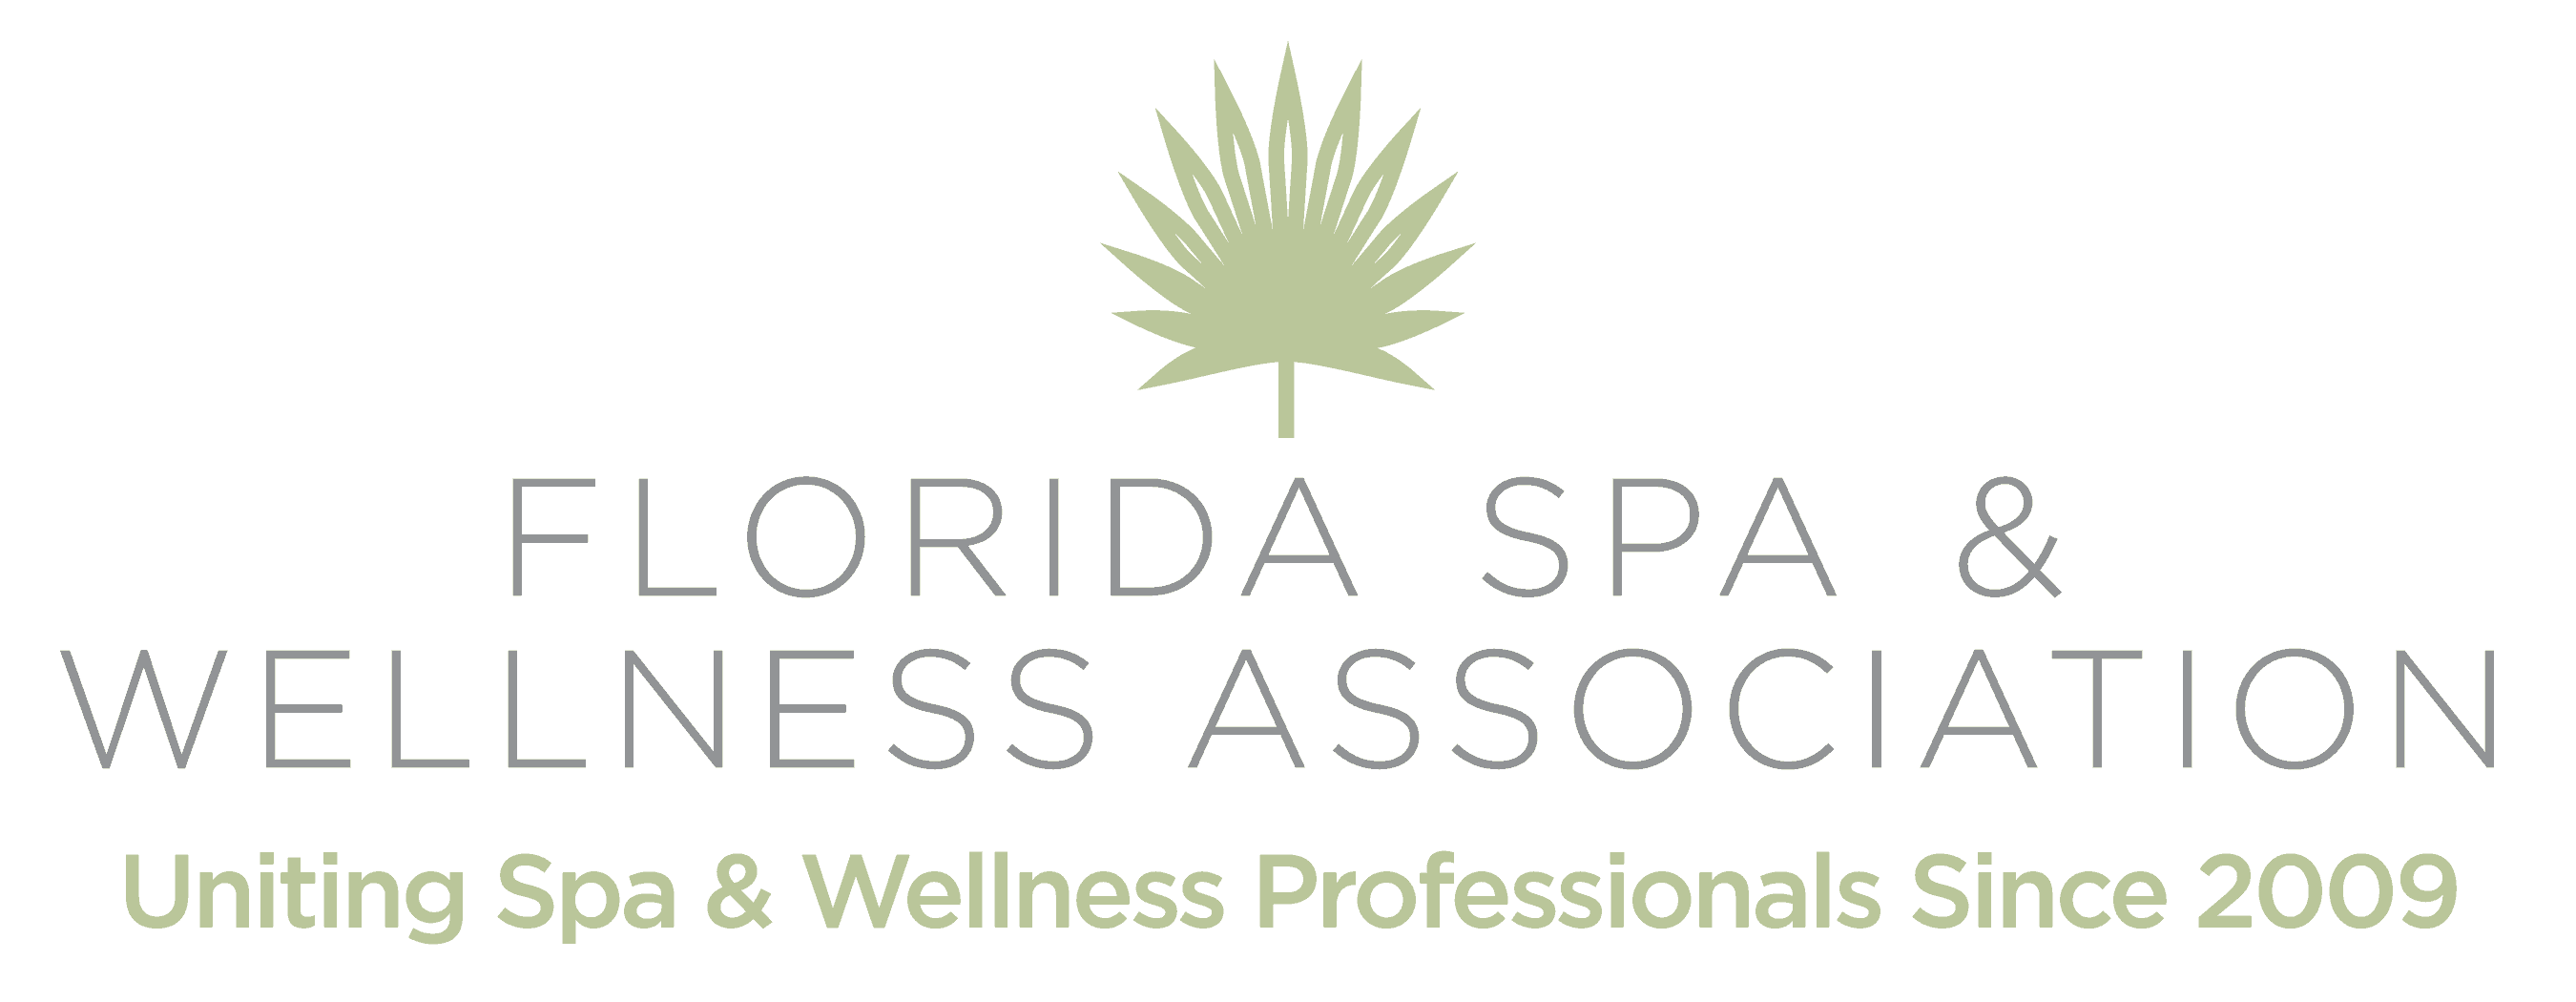 Florida Spa Association.